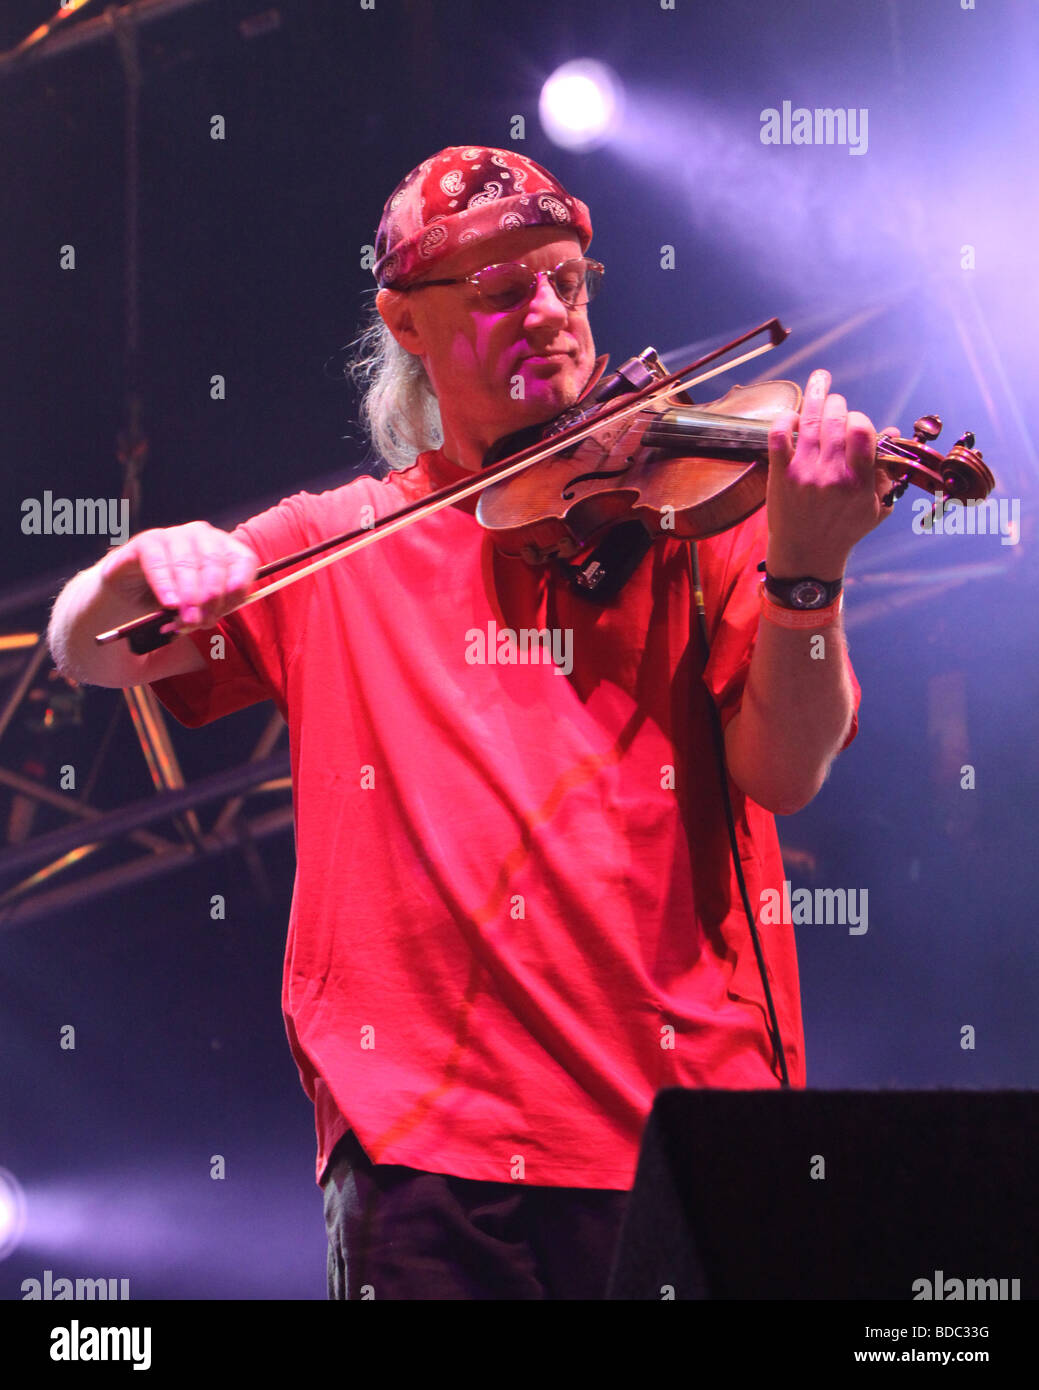 Ric Sanders at Fairport Conventions Cropredy Festival 15th August 2009 - Stock Image